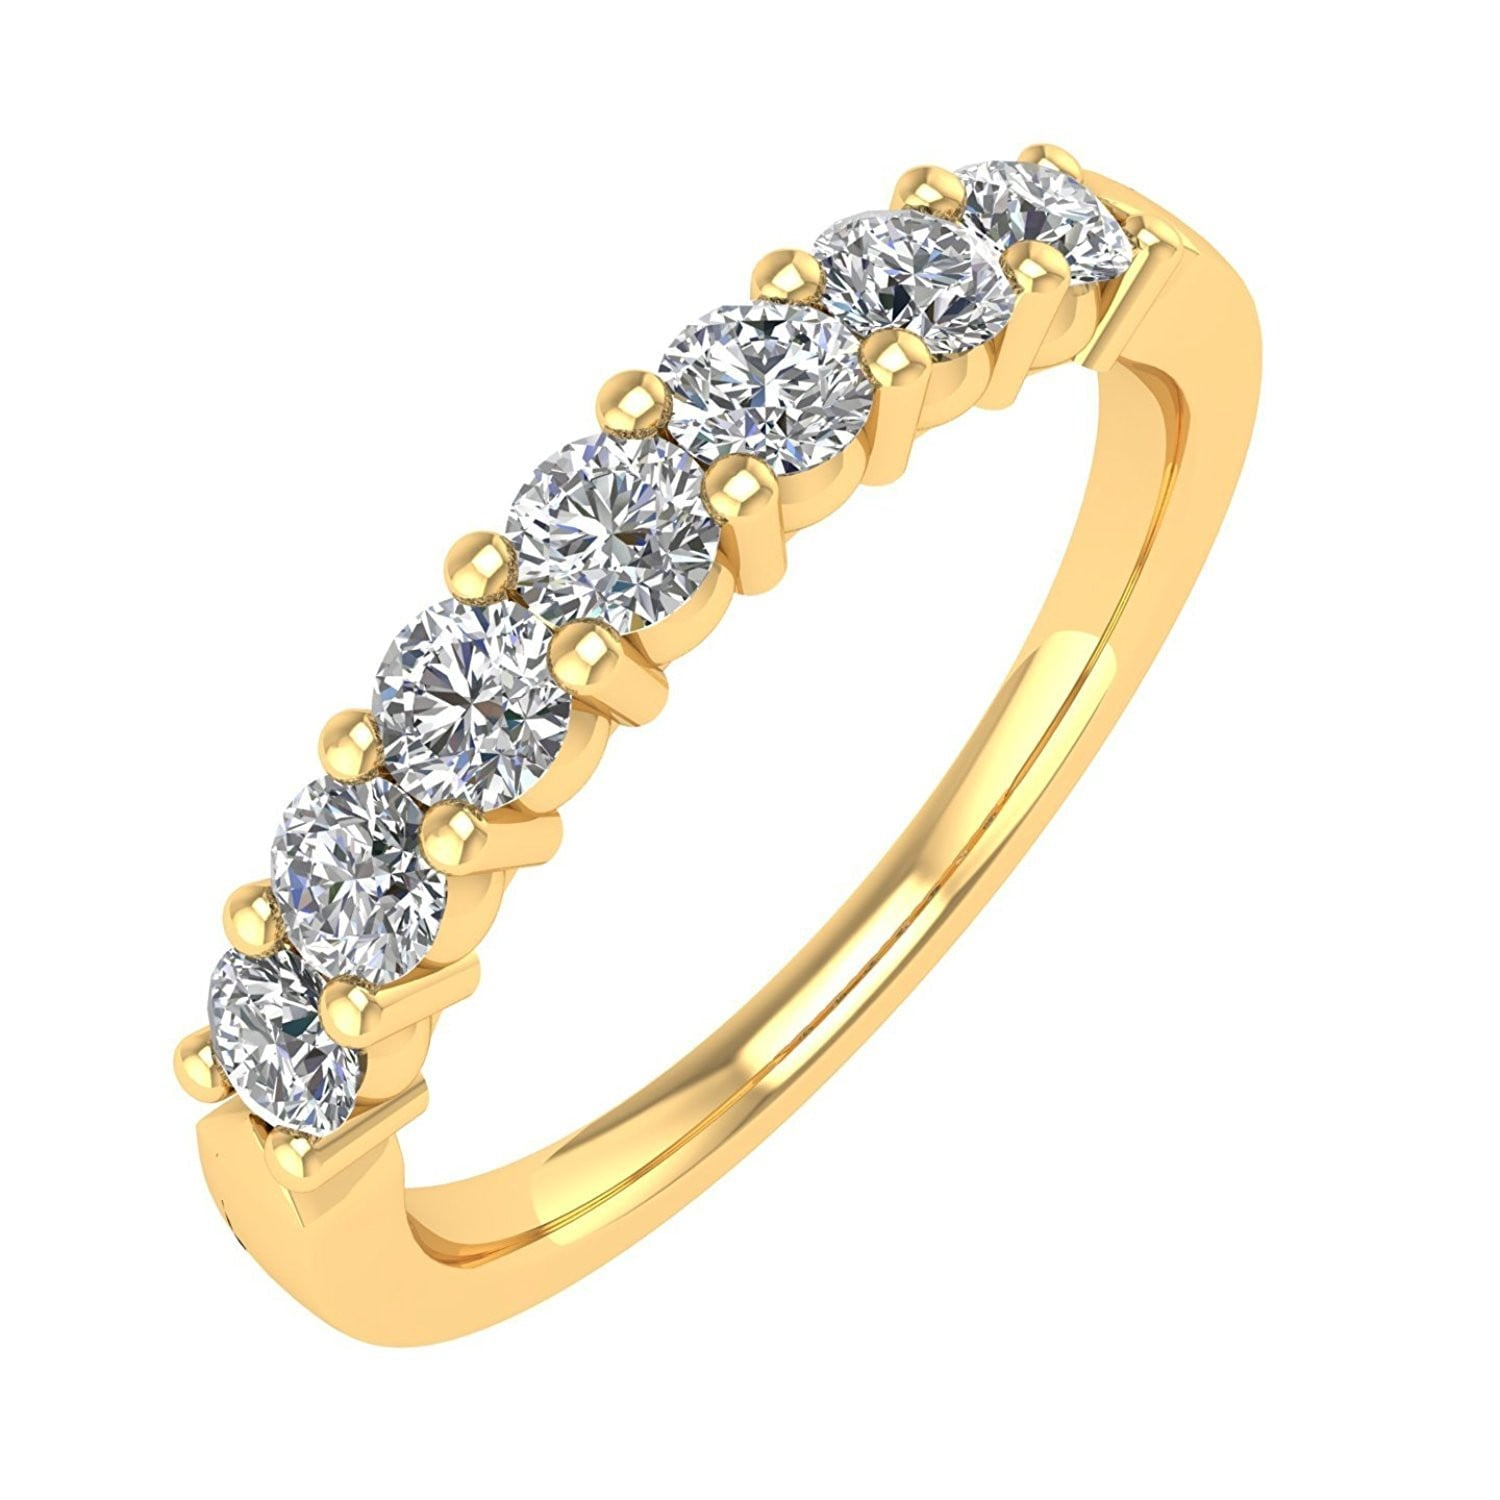 pin prong engagement round stone set diamond rings ring